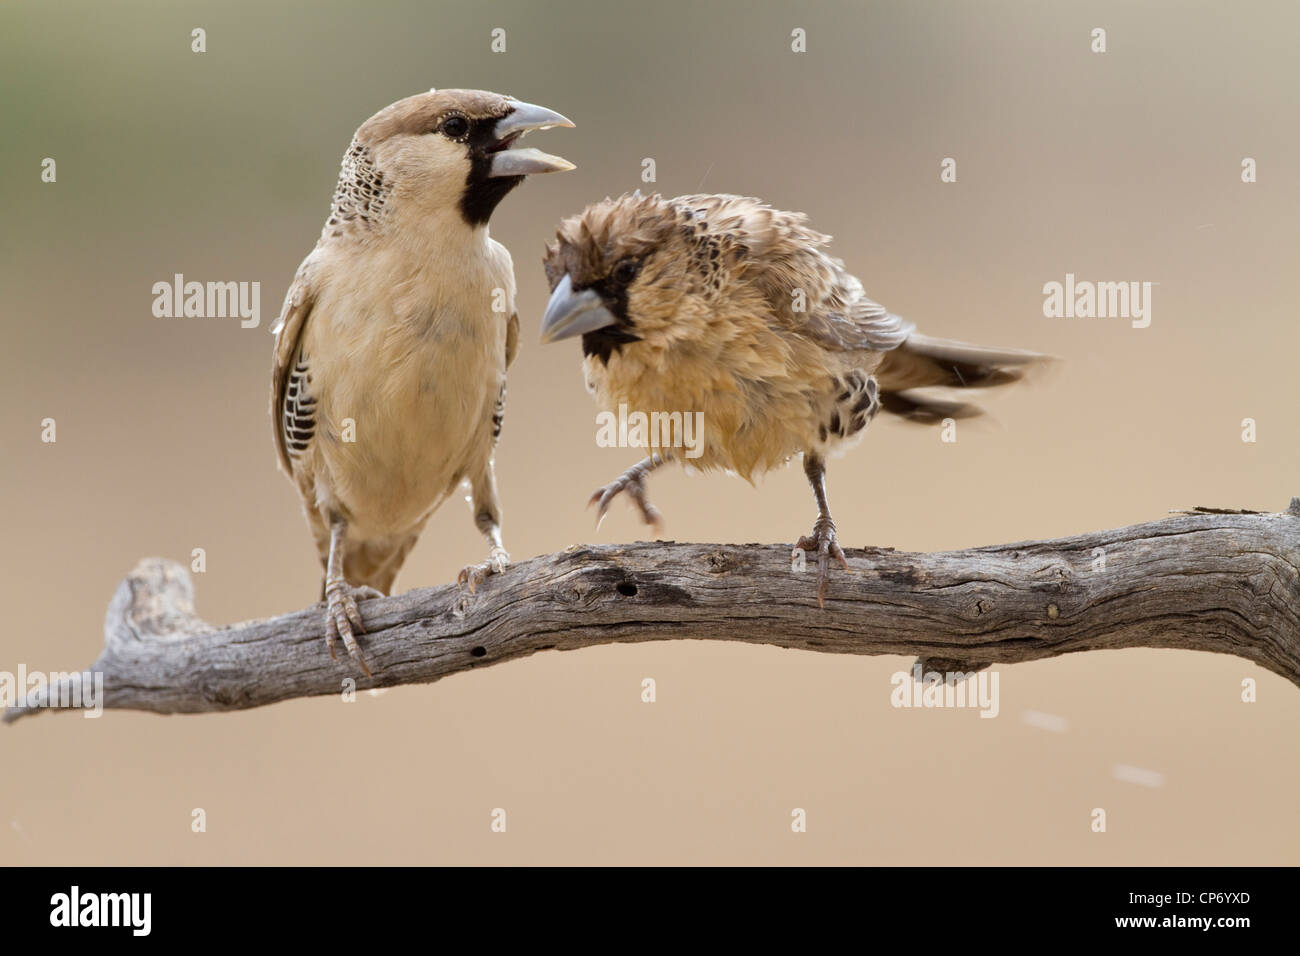 Two sociable weaver birds on a branch one wet from a fresh birdbath - Stock Image